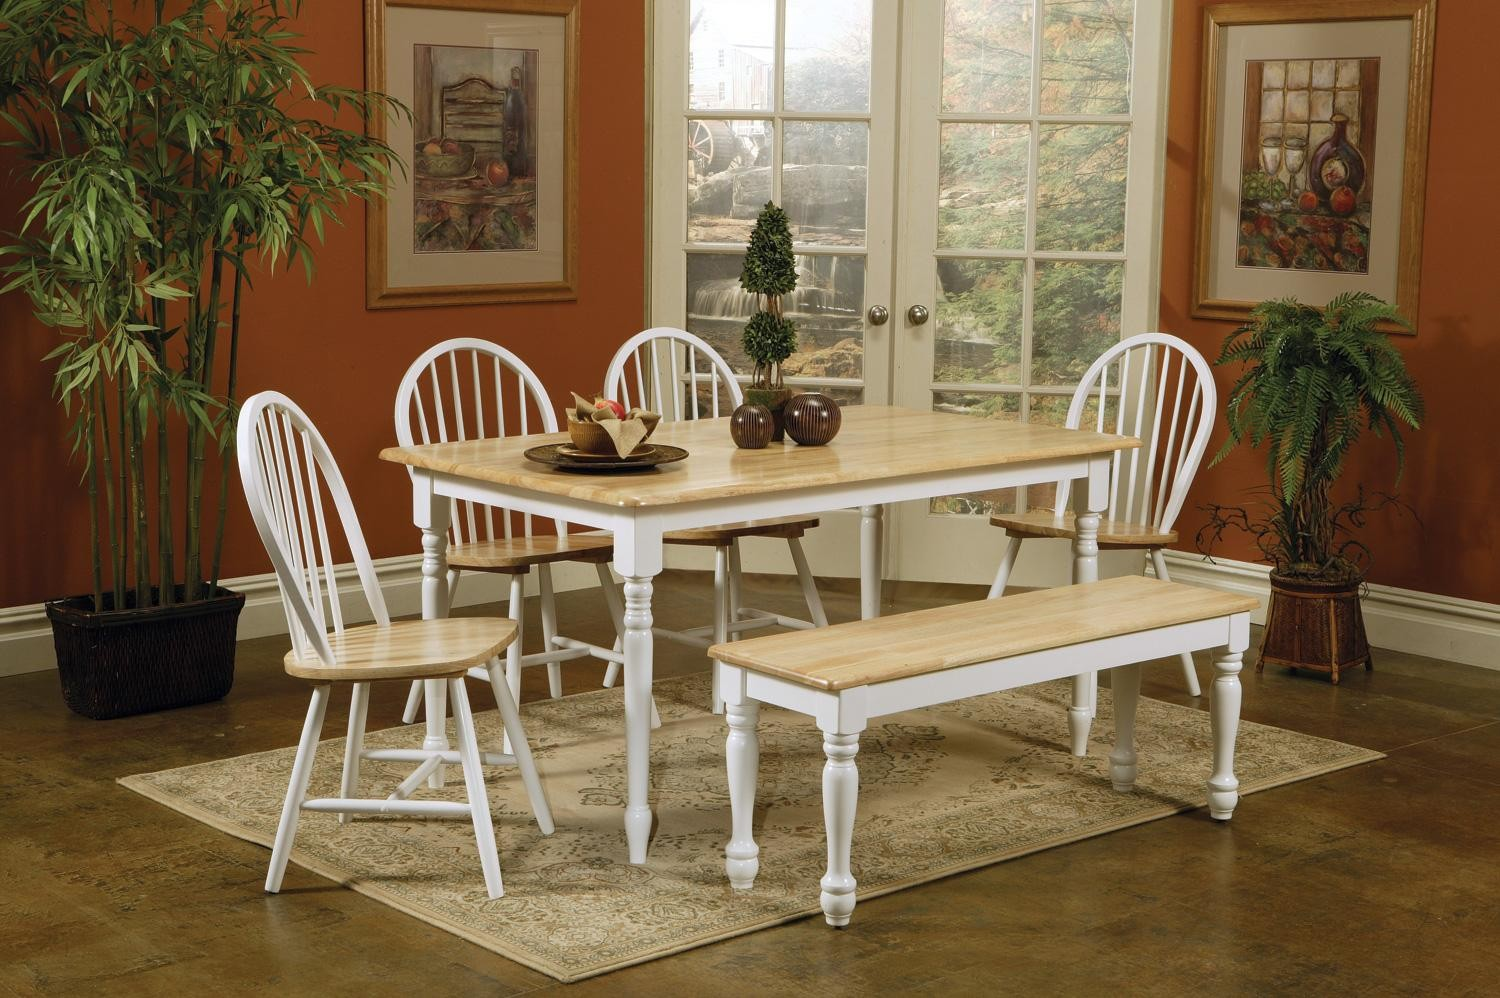 Maple Kitchen Table And Chairs Curved Bench Seating Kitchen Table 53 Inch Round Dining Table